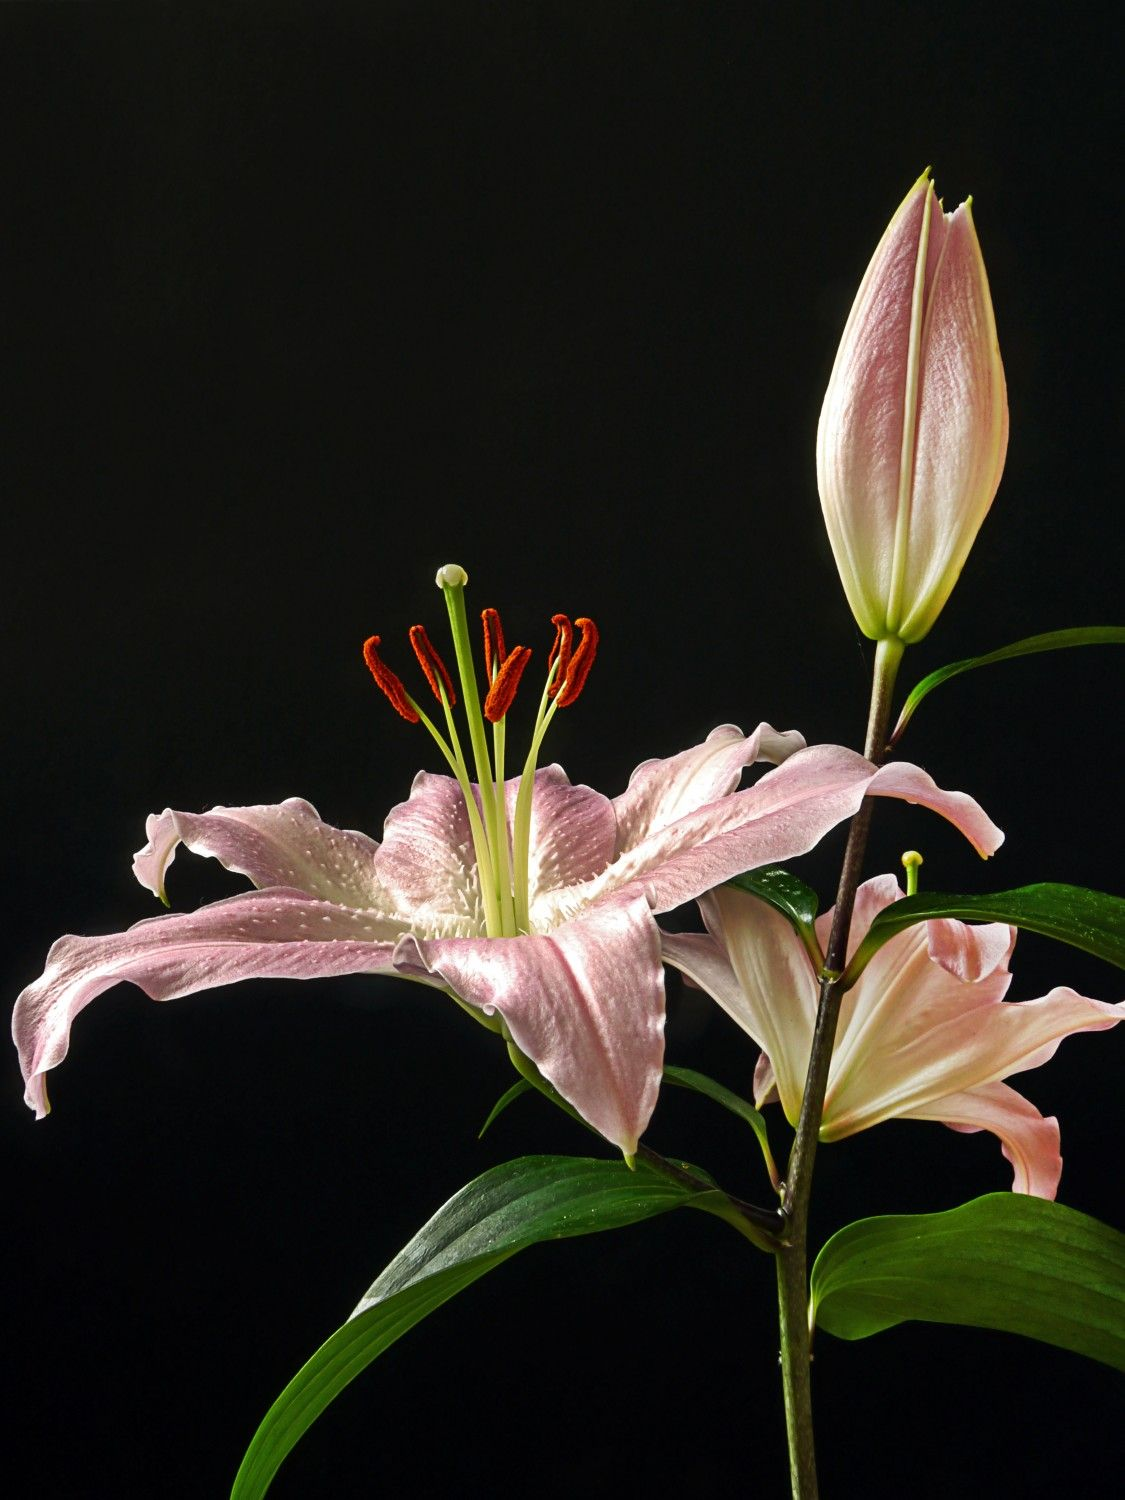 Stargazer lily by stephenmchale on Watercolor flowers